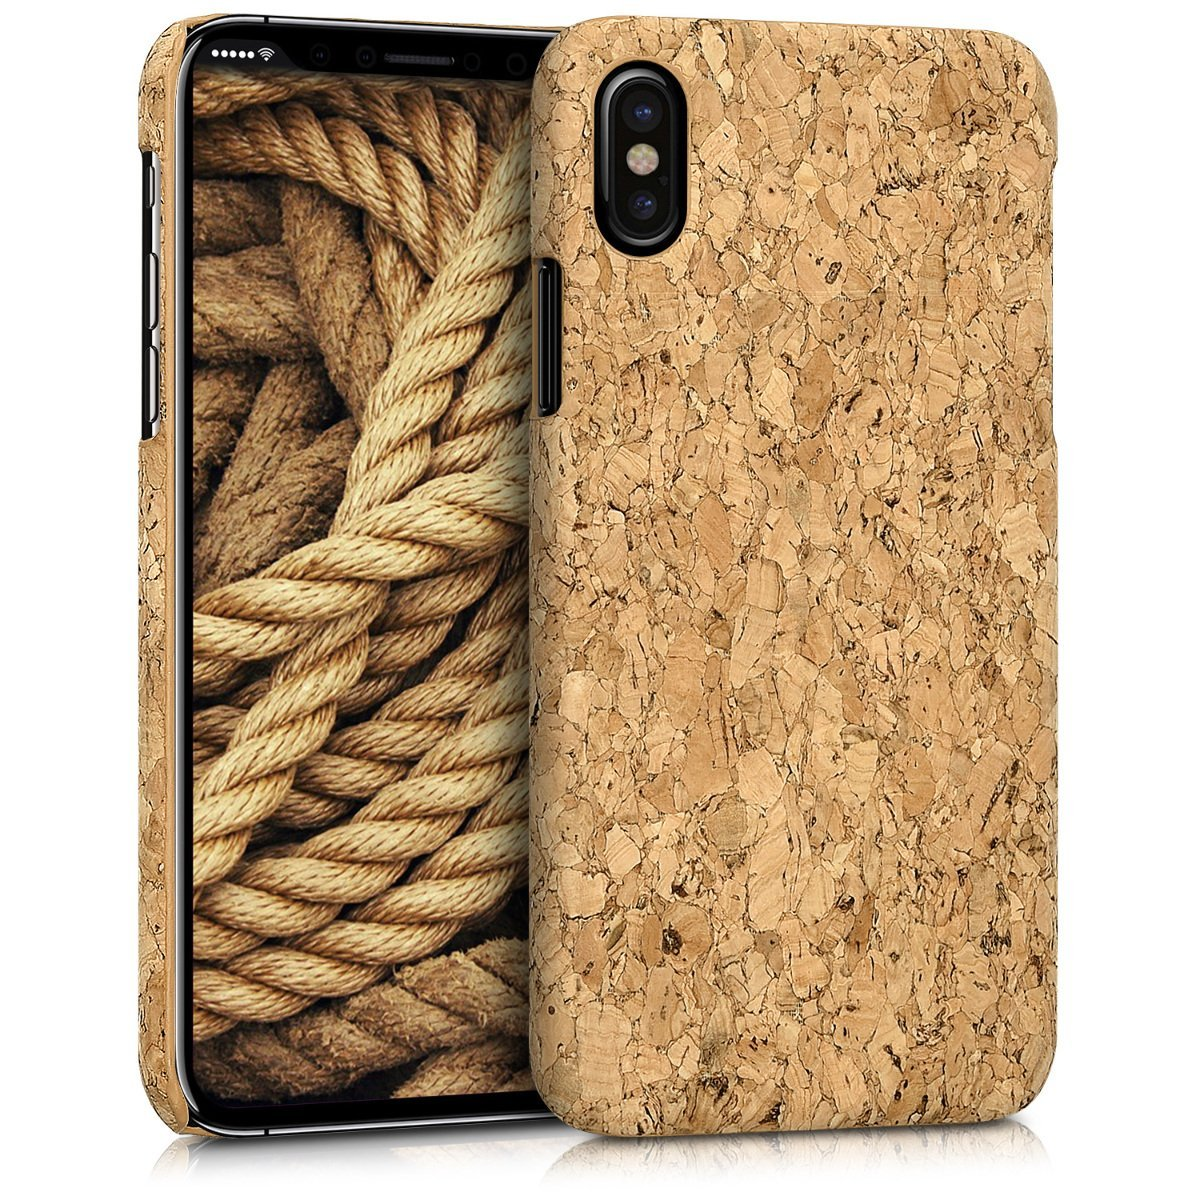 KW Σκληρή Θήκη iPhone X / XS - Light Brown Cork (42511.24)